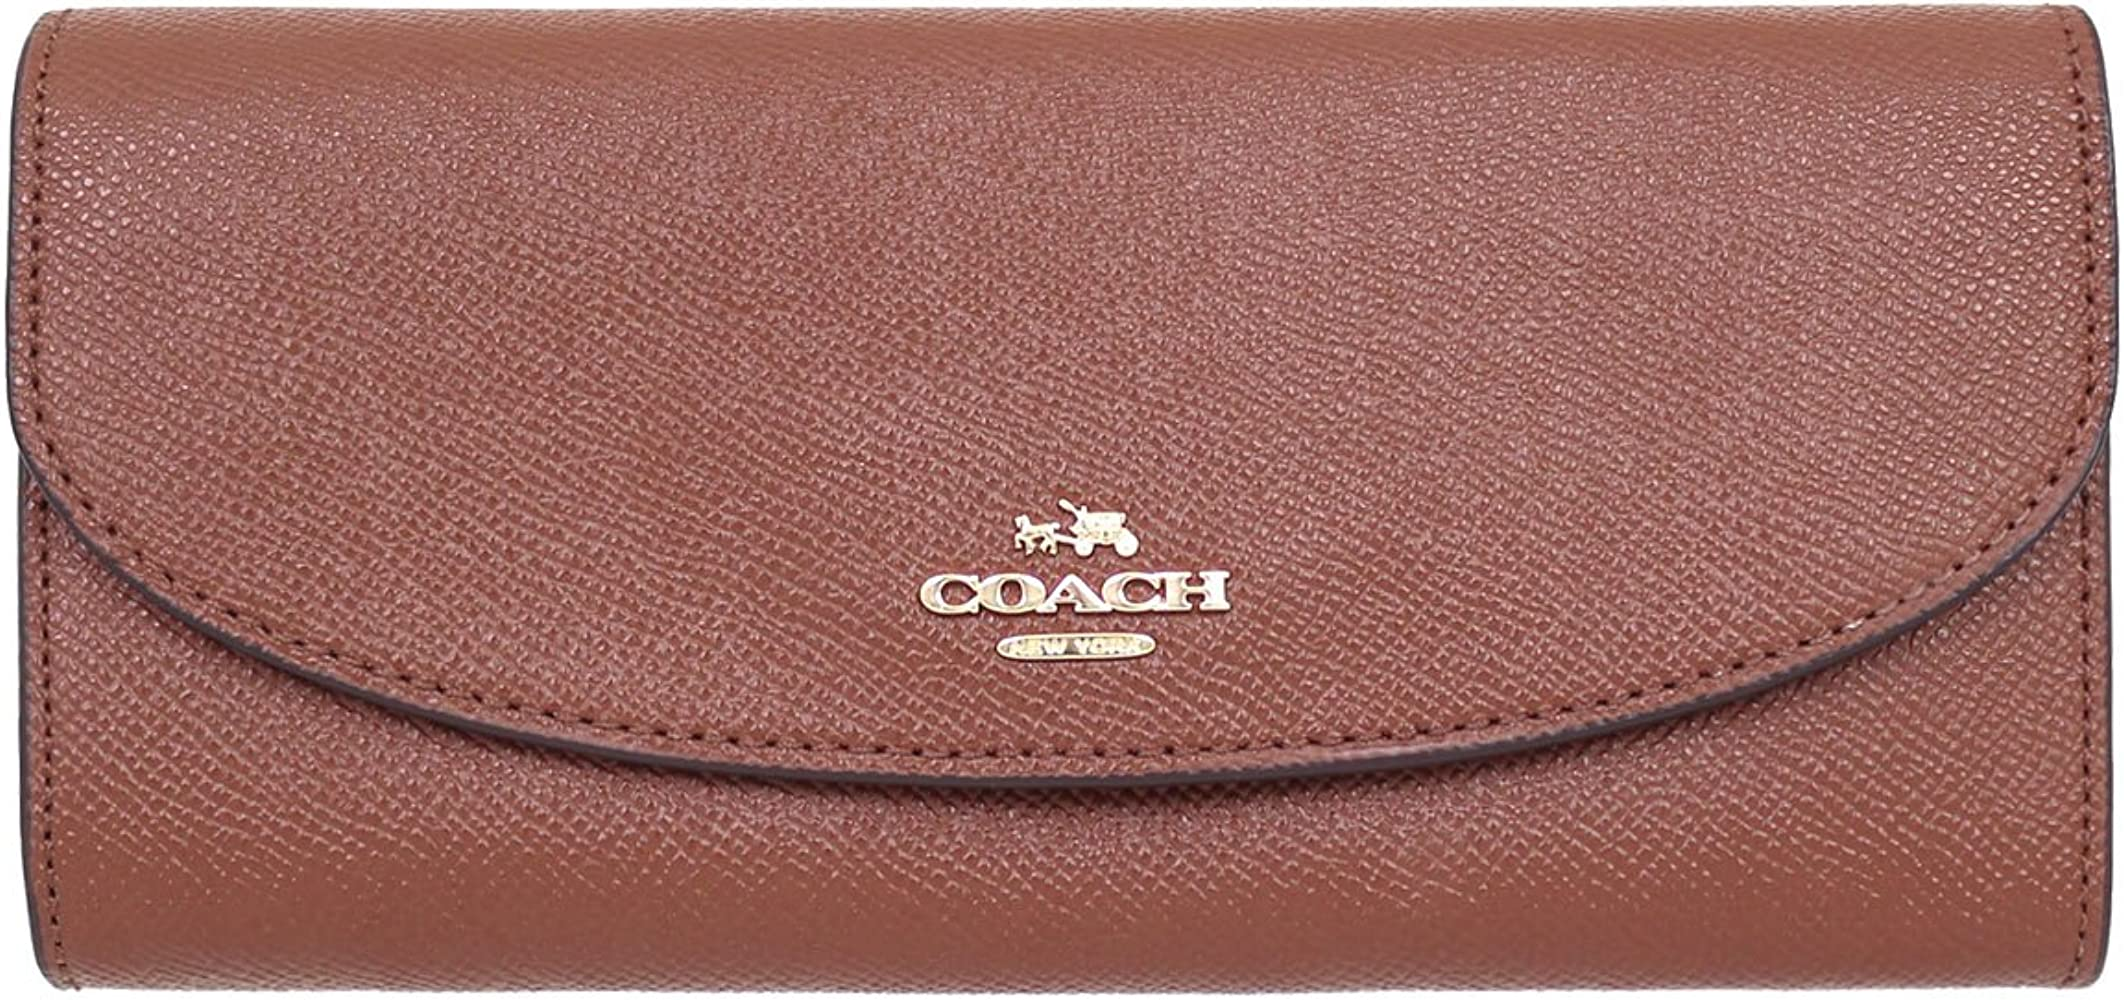 cheap for discount 7c3ca 28580 コーチ] COACH 財布 (長財布) F54009 サドル2 IMEB0 レザー 長 ...